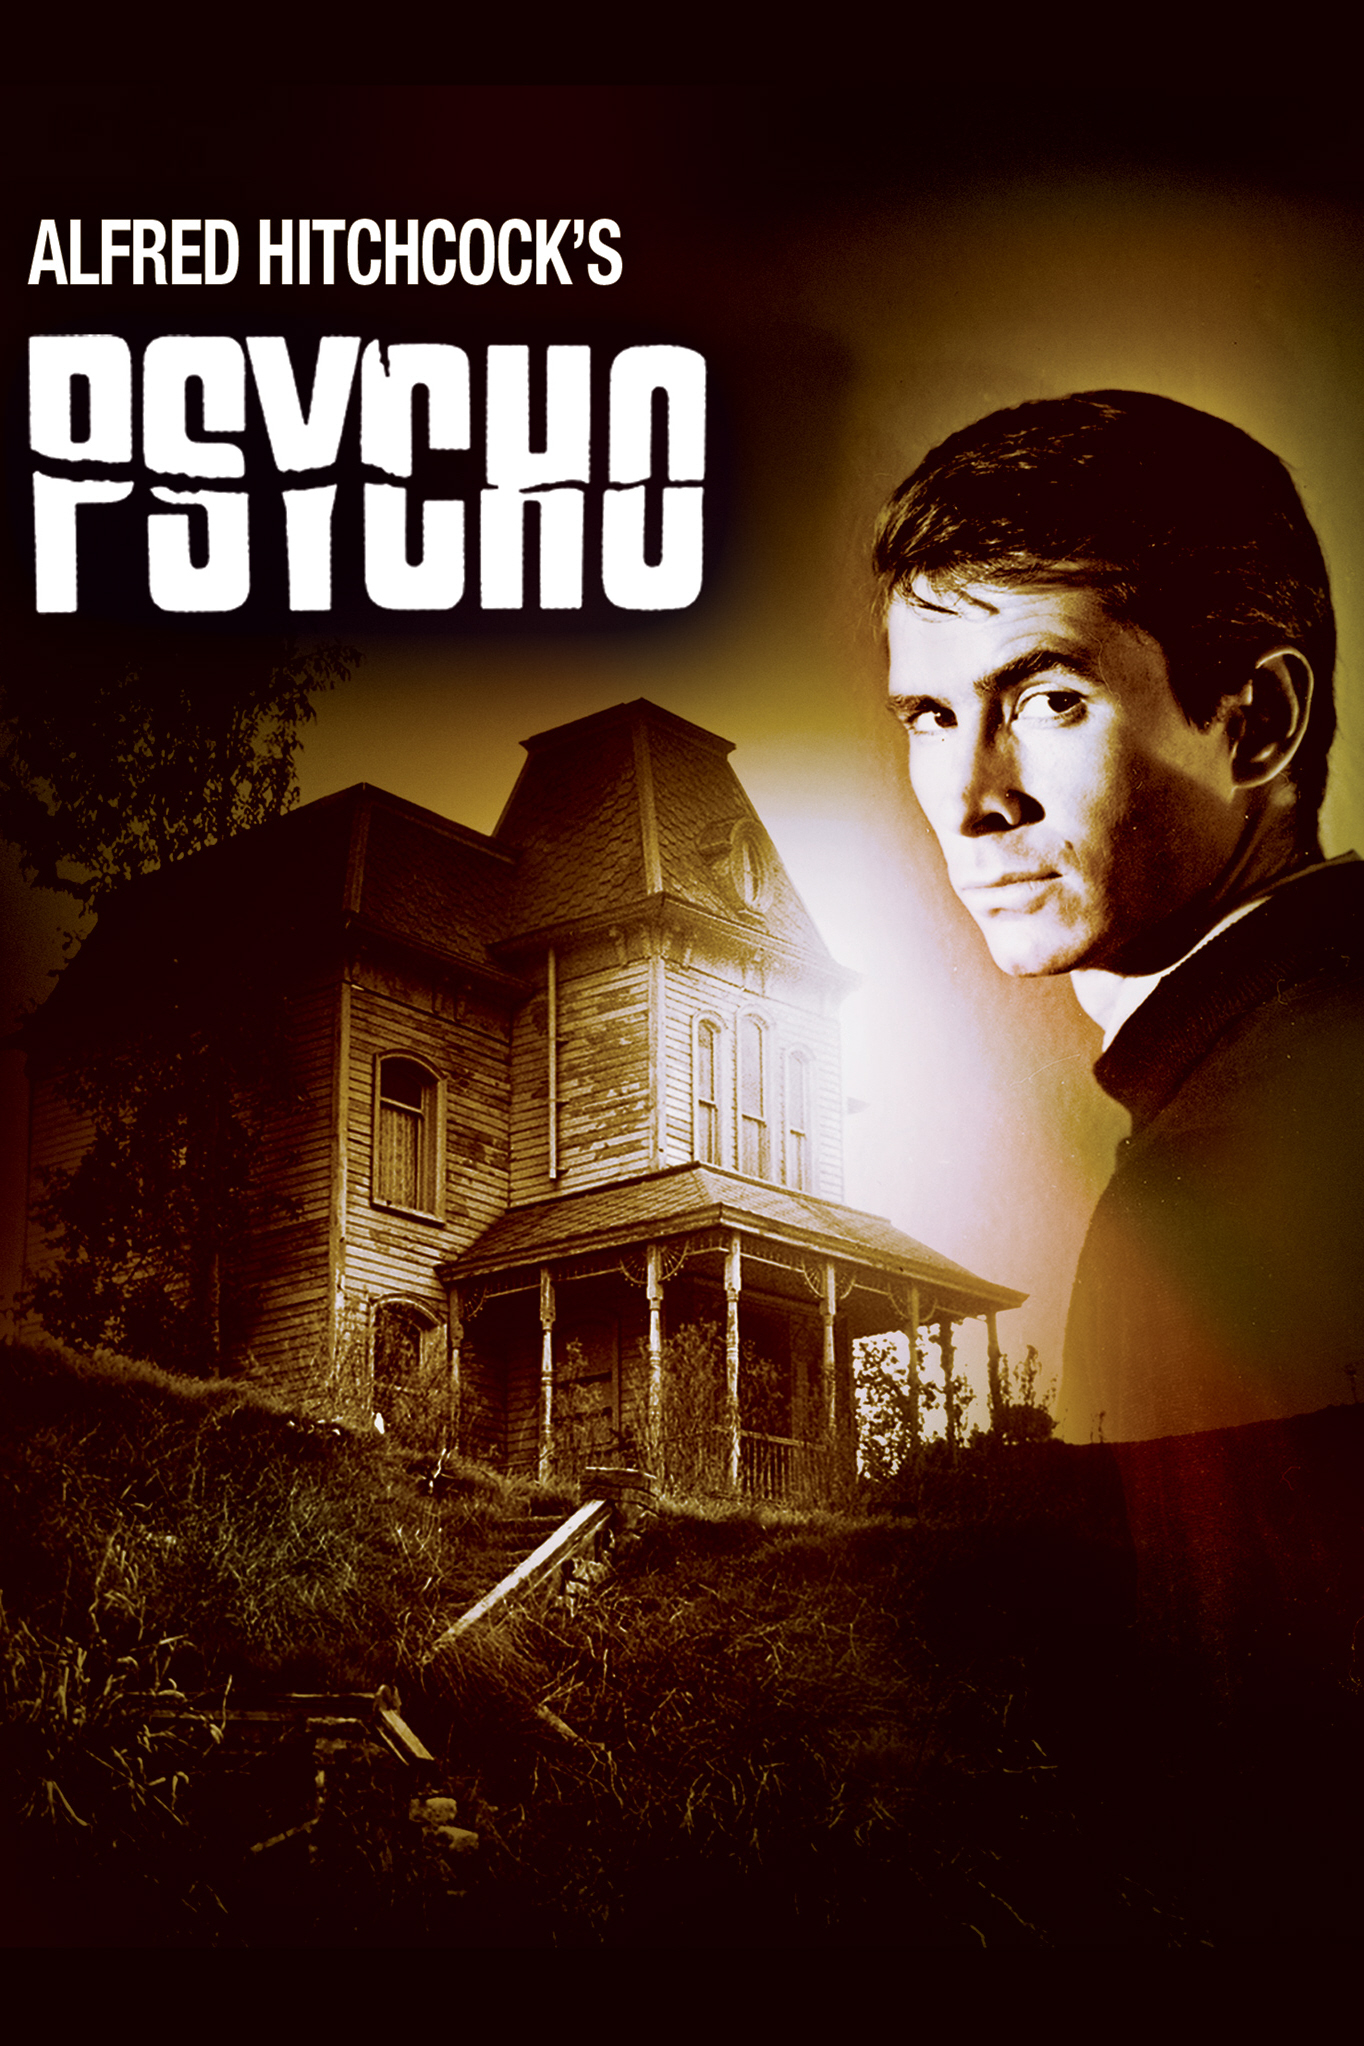 suspense and tension in film psycho essay In psycho in the shower philip j skerry indeed describes this as  generic  conventions, psycho becomes a horror film only at the end, when a skull   remains, the more our sense of suspense is heightened, and tension mounts in   of critical essays on the work of pedro almodóvar (university of minnesota  press, 2009.